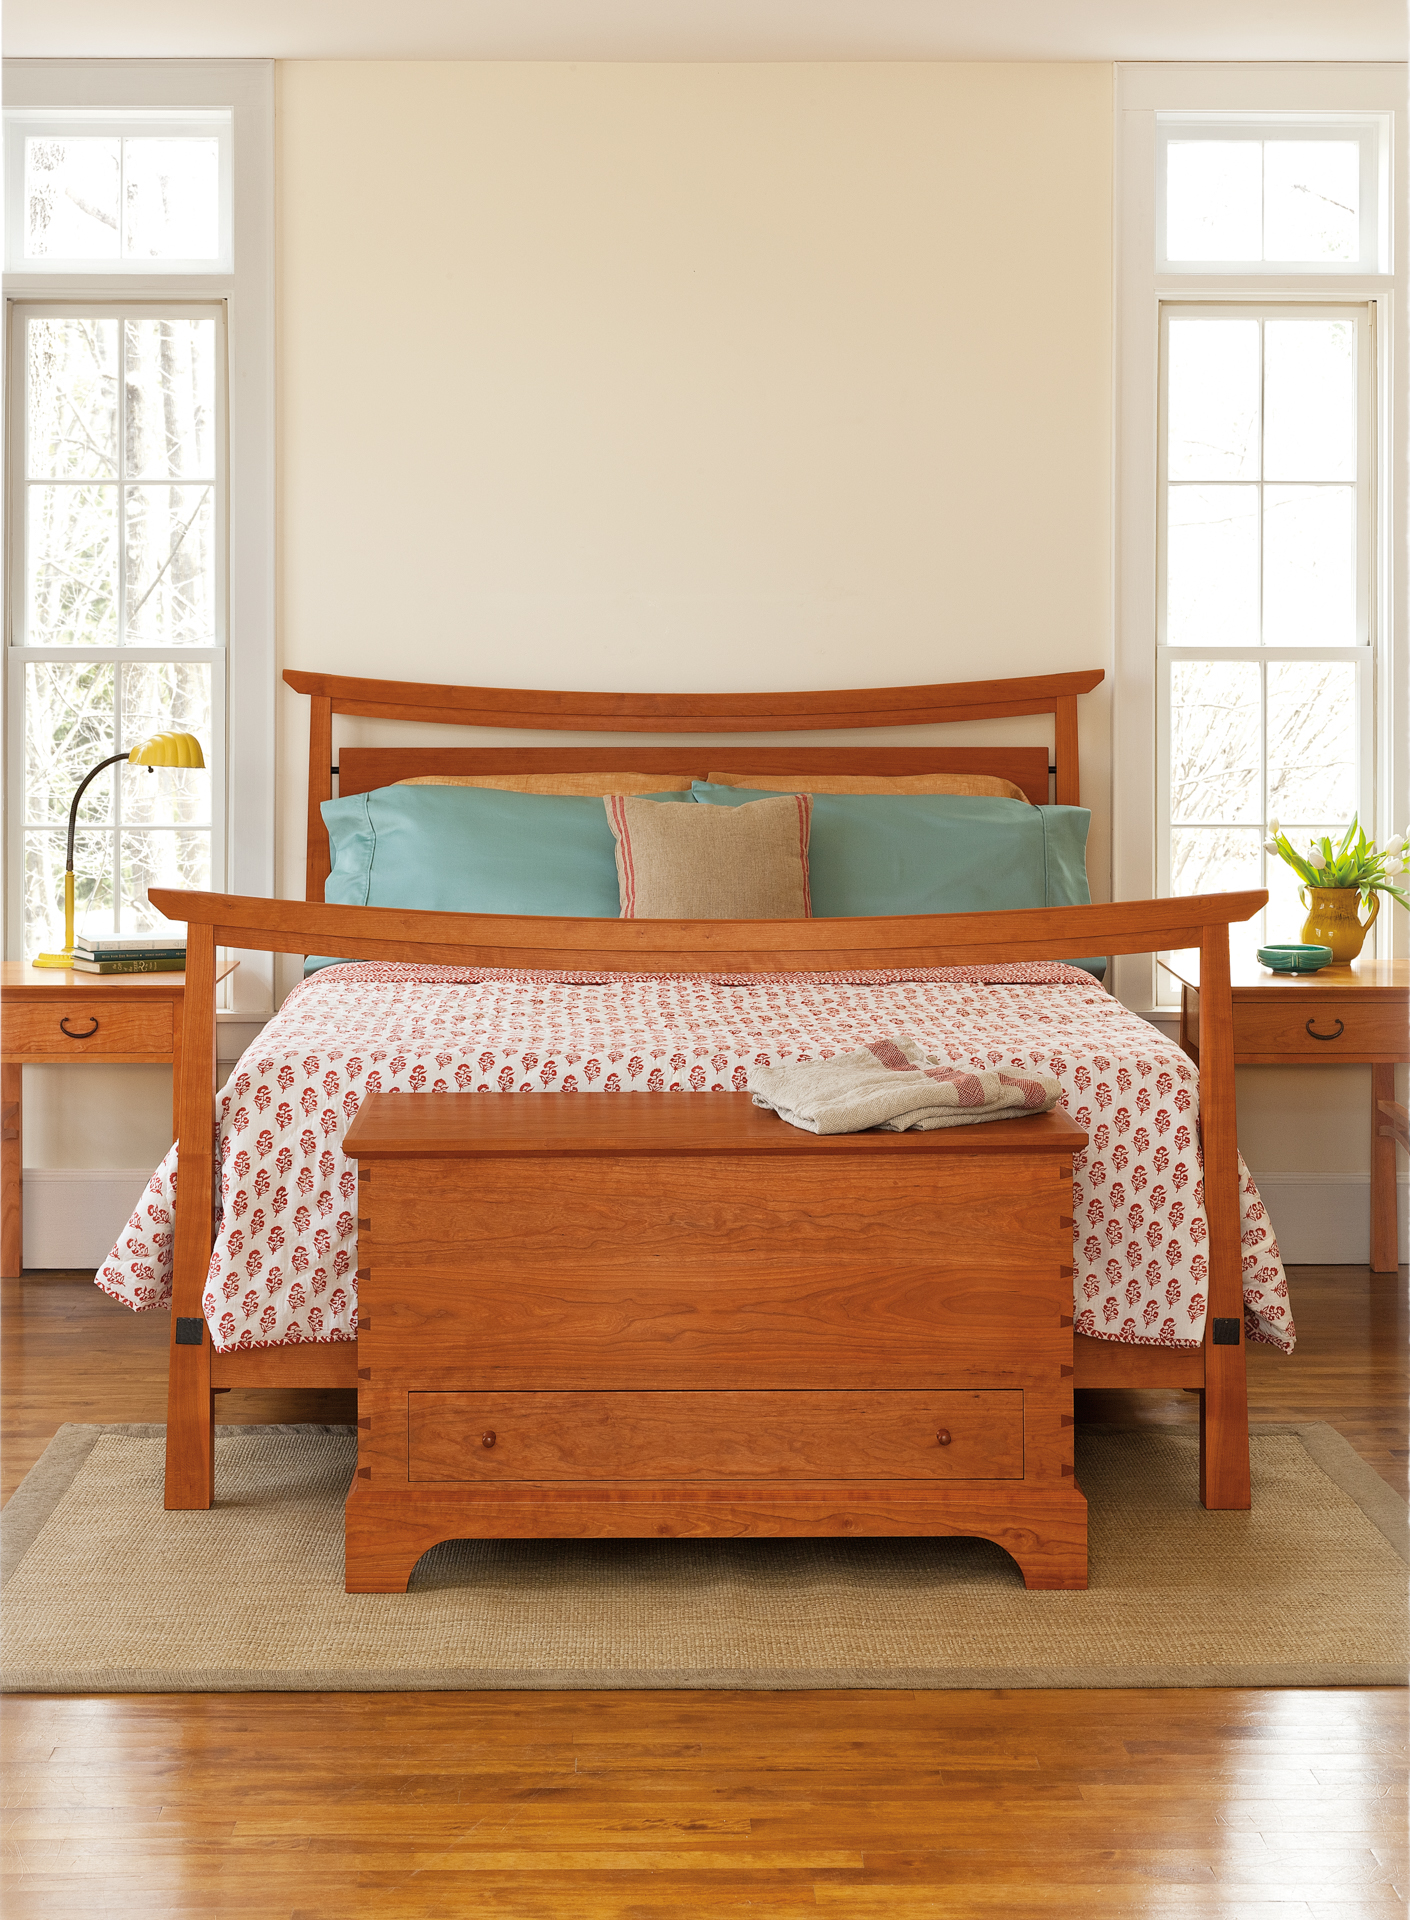 American Bungalow Bed